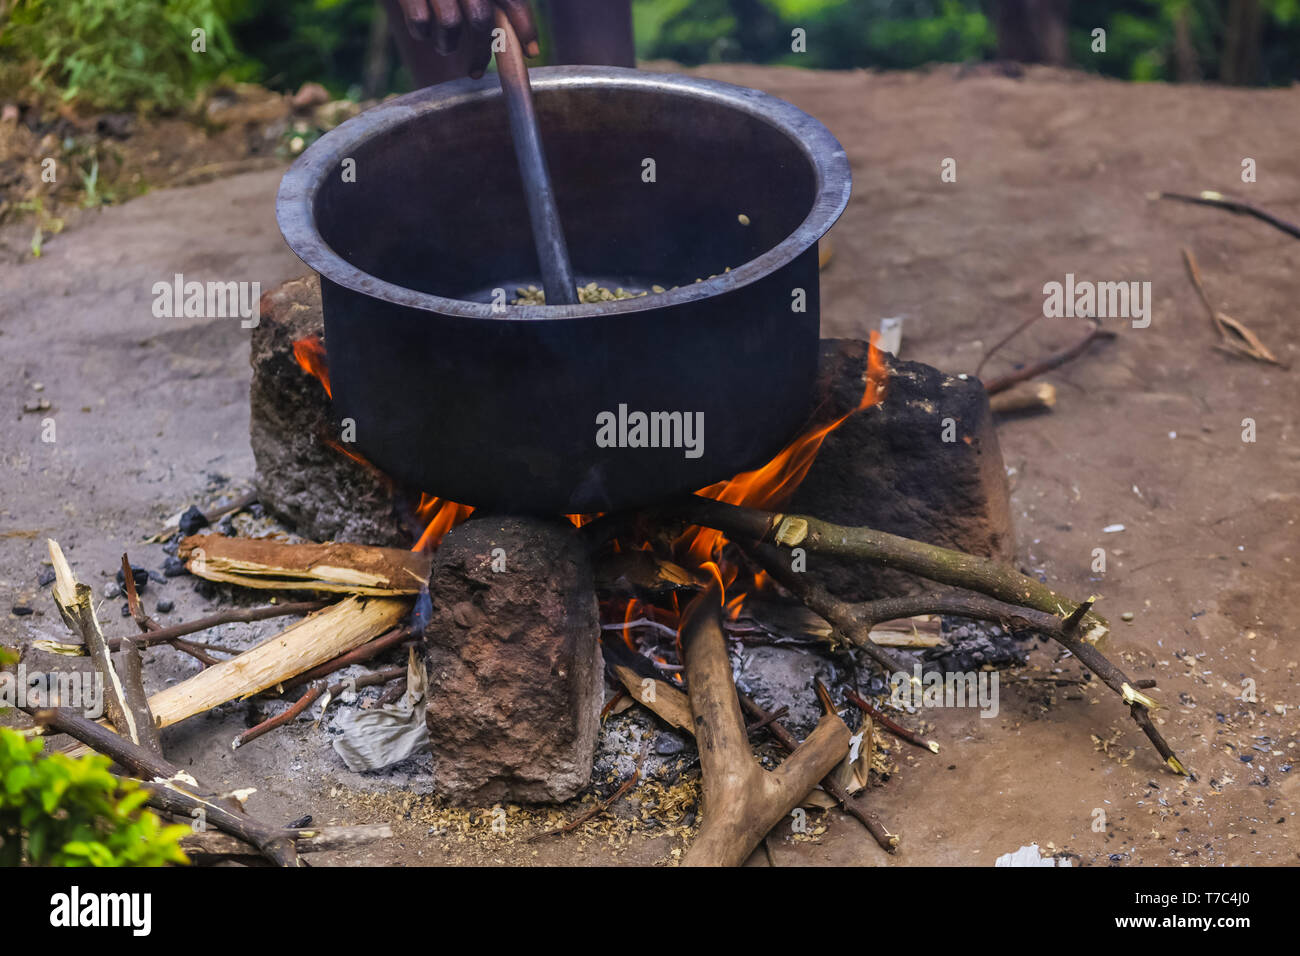 Hot red flame of the bonfire, smoldering firewood, nature around. Fresh mountain air in a village. Tasty smoke with roasted coffee aroma. Stock Photo